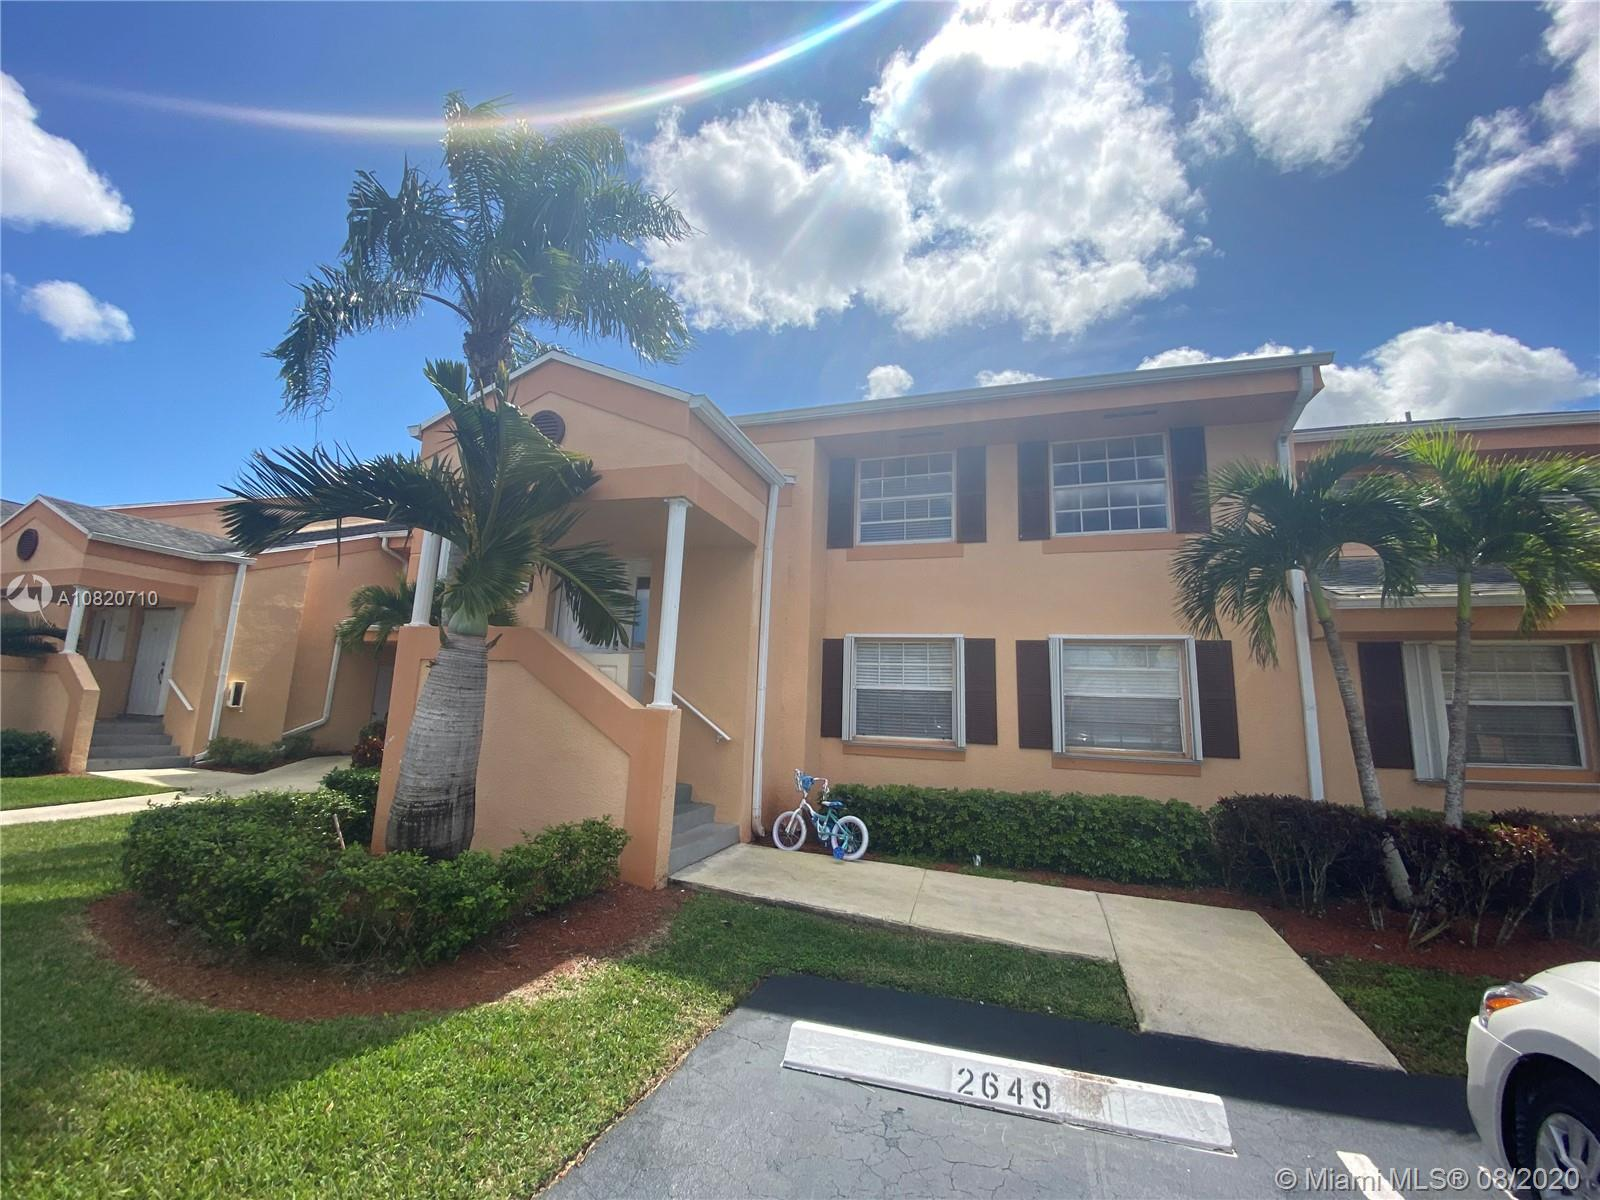 2650 SE 19th Ct #206-D For Sale A10820710, FL